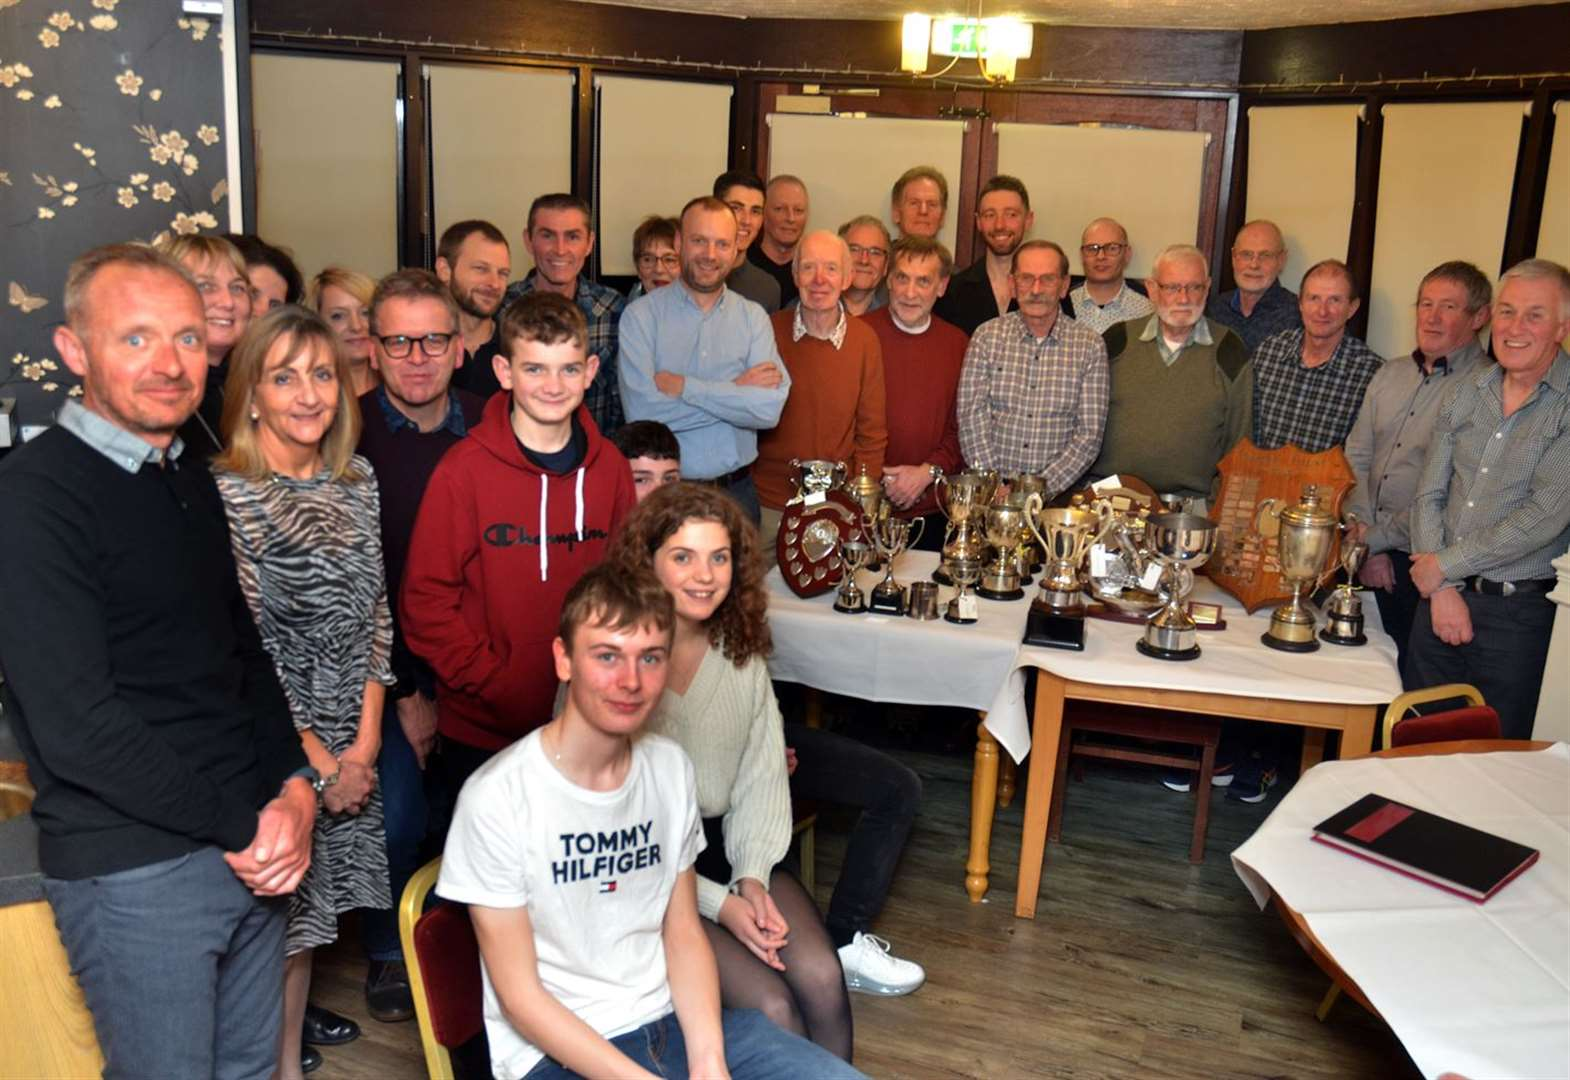 CYCLING: Awards night in Spalding for club members